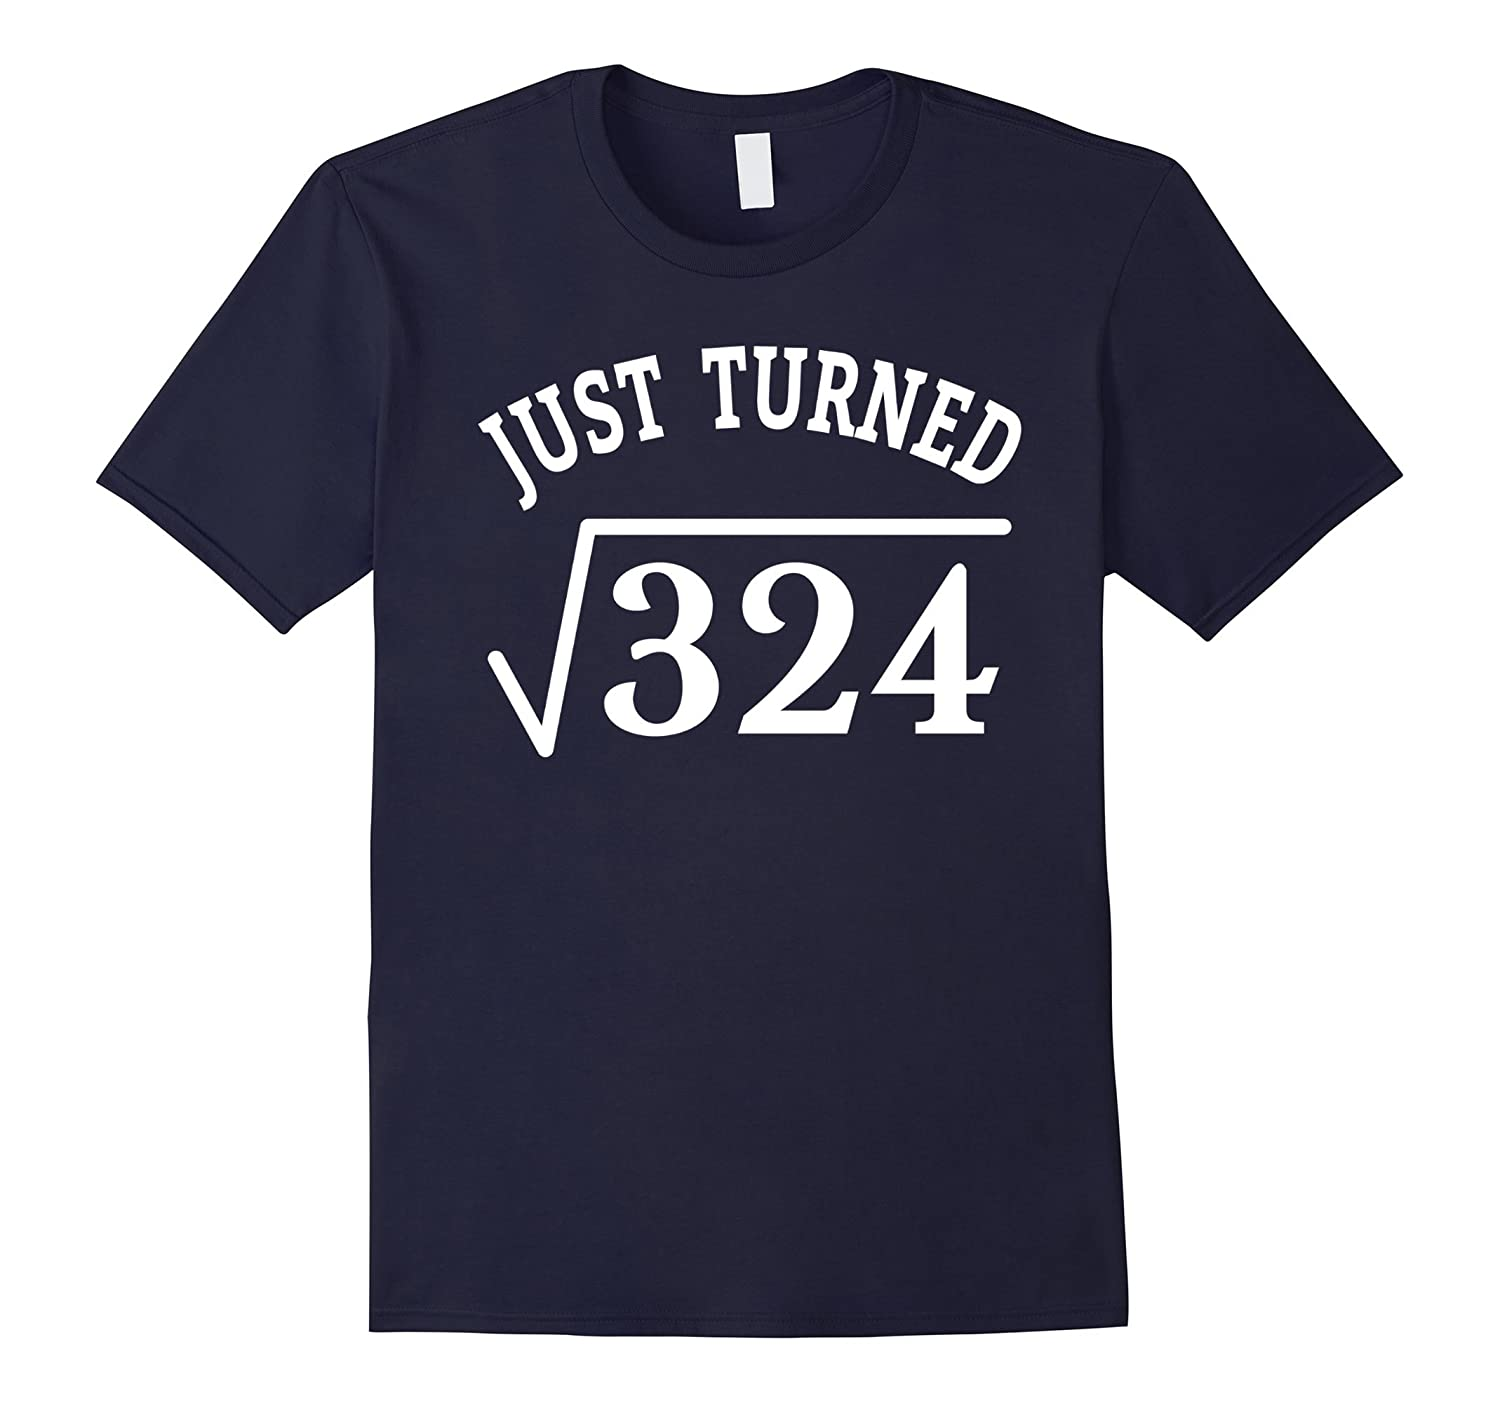 18 Years Old Just Turn Square Root 324 18th Birthday T-Shirt-CL